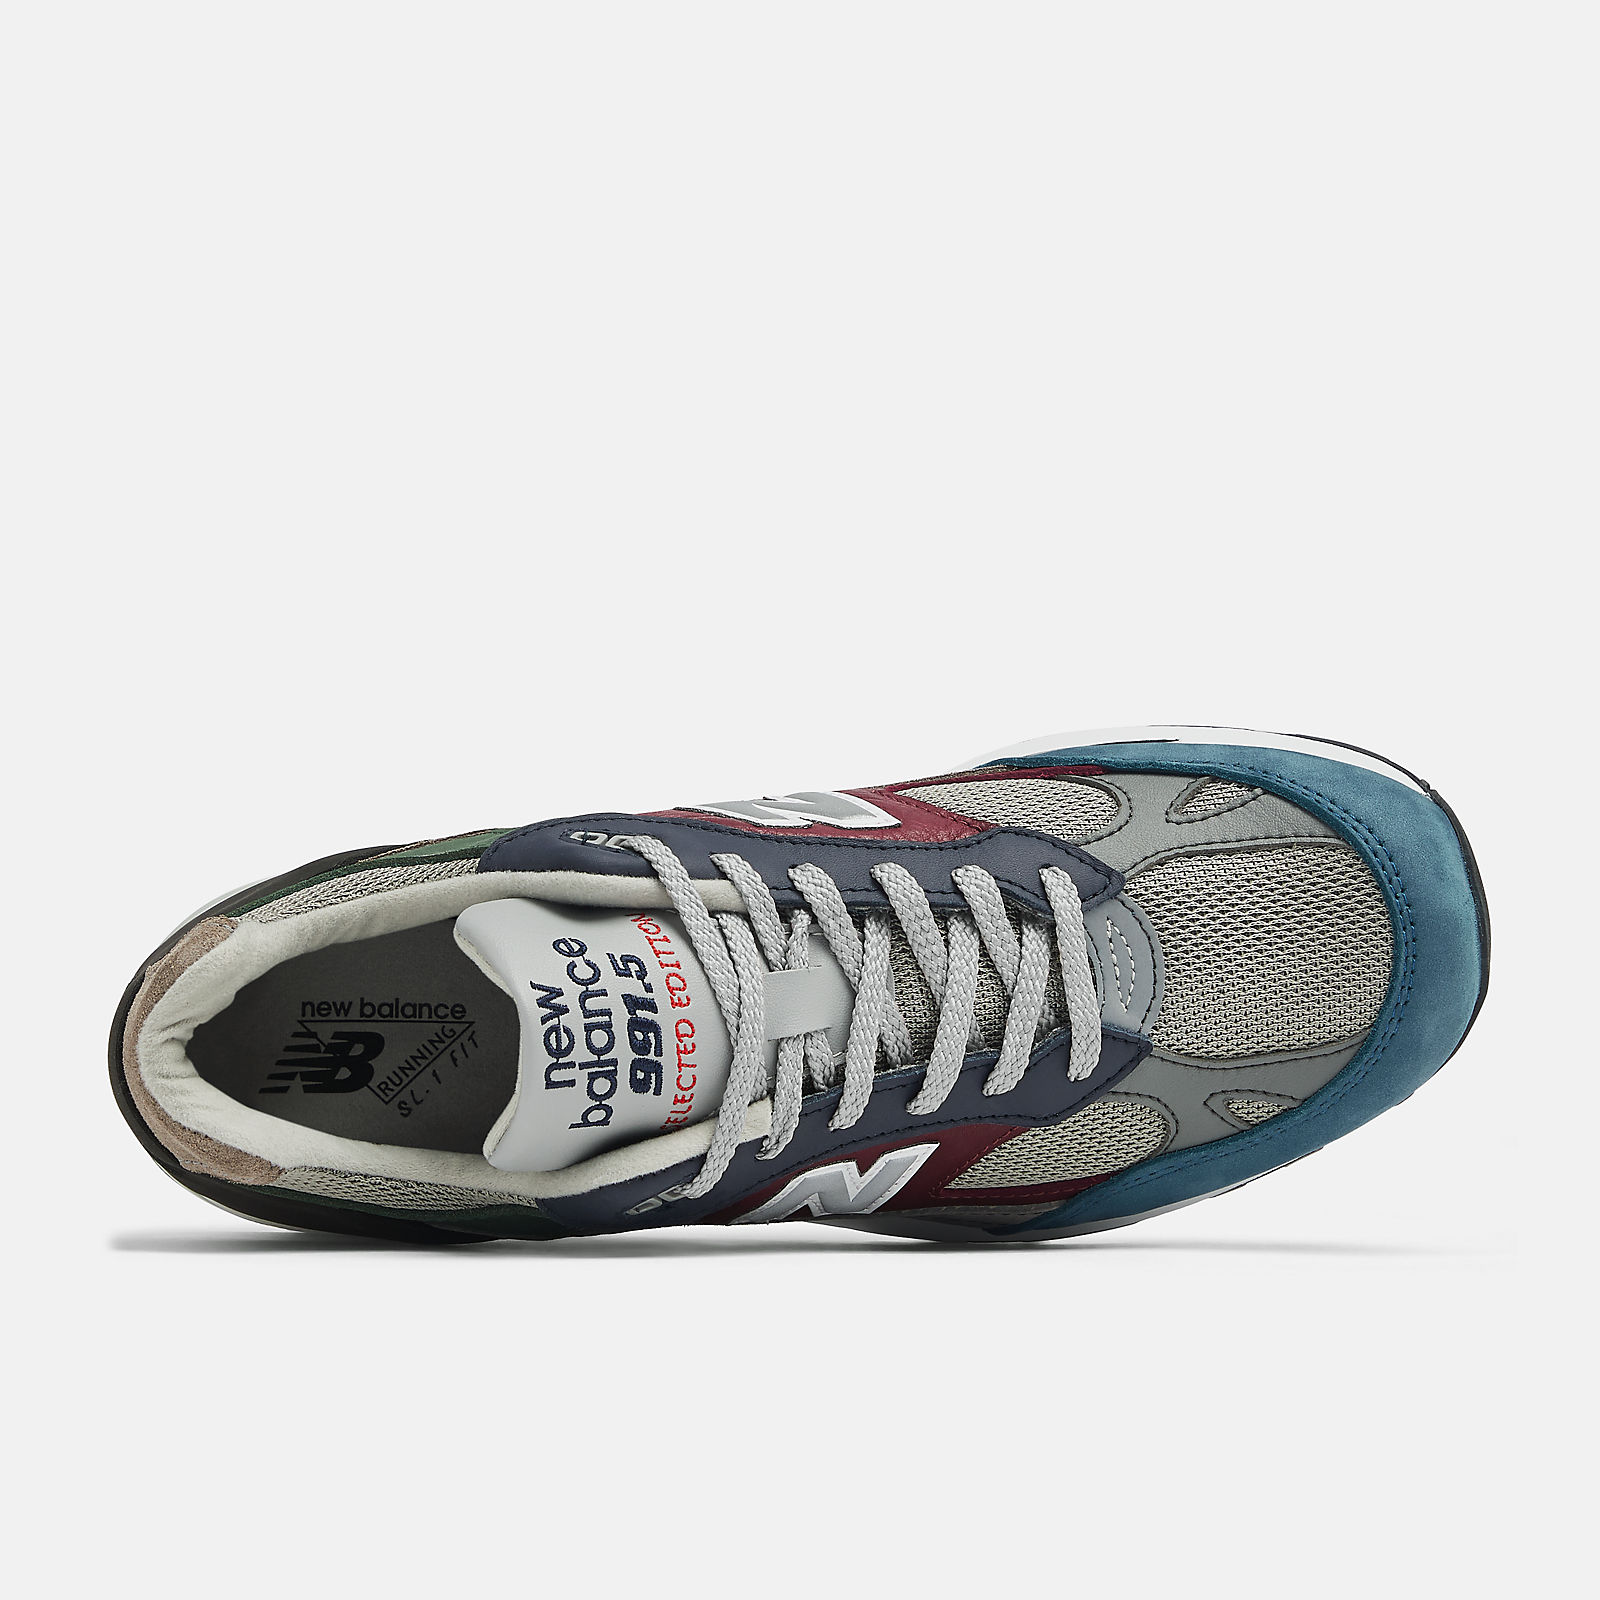 MADE IN UK 991.5 - New Balance